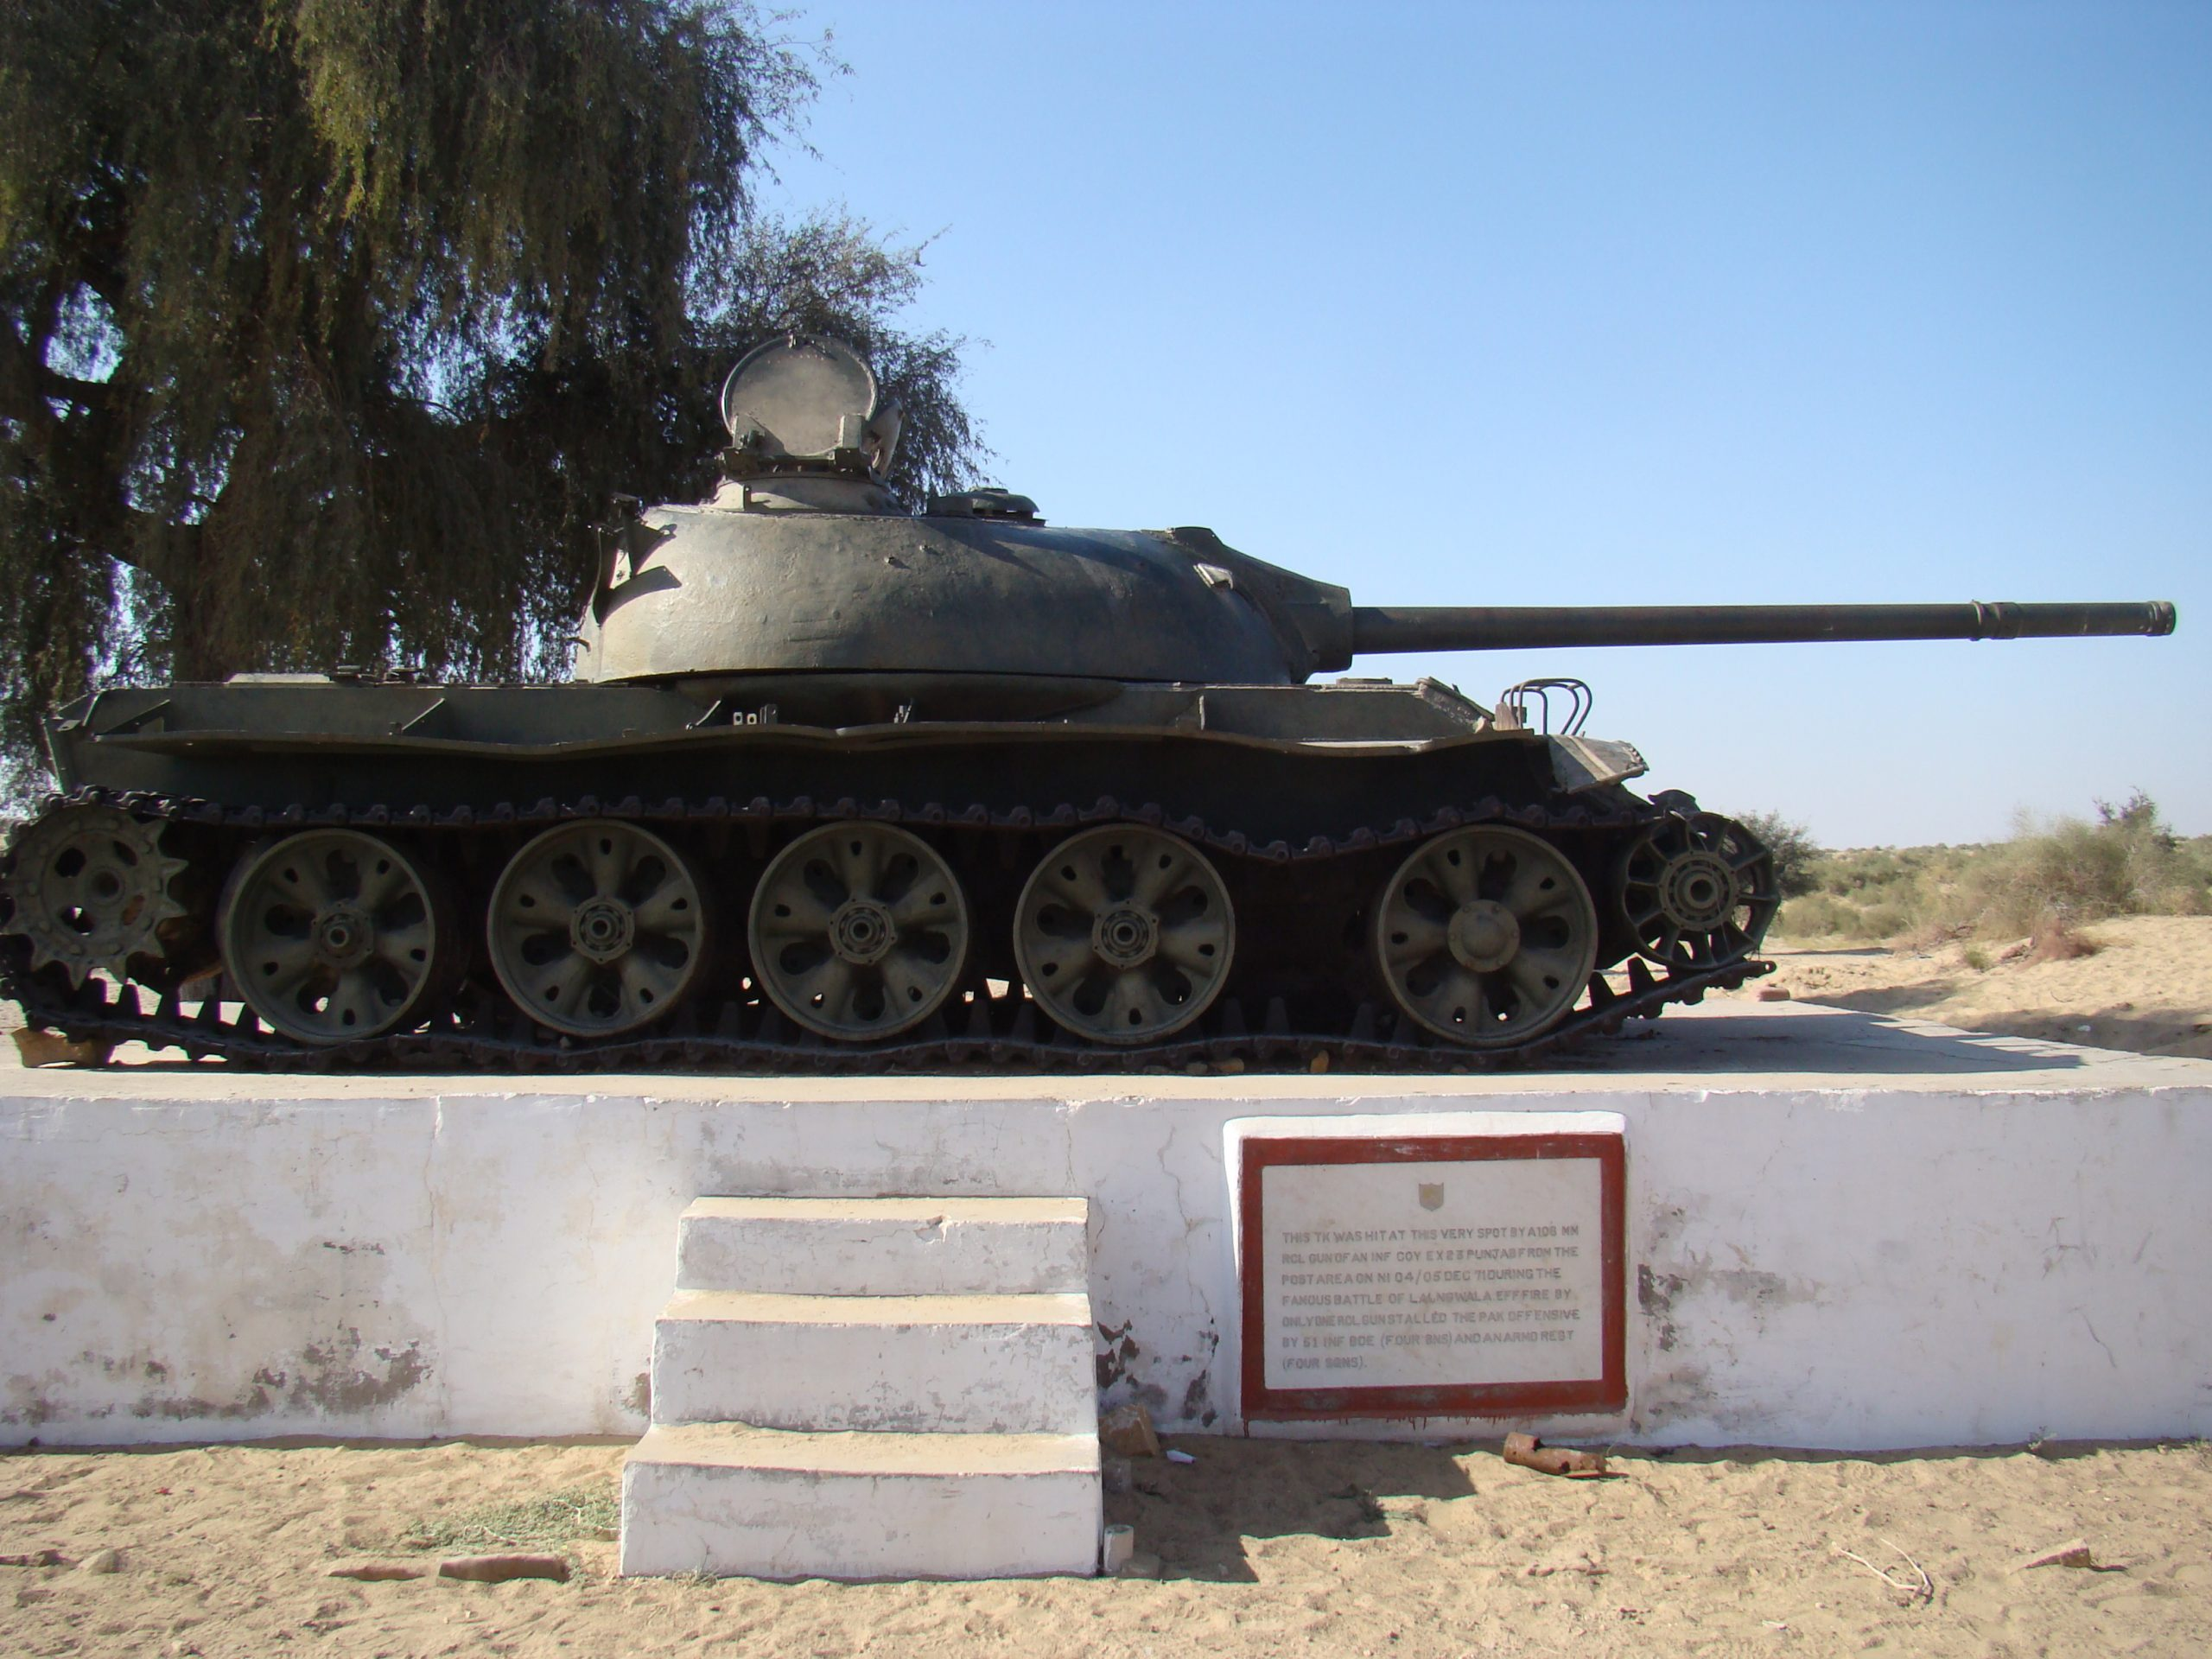 Longewala Offbeat Destinations When Touring Rajasthan